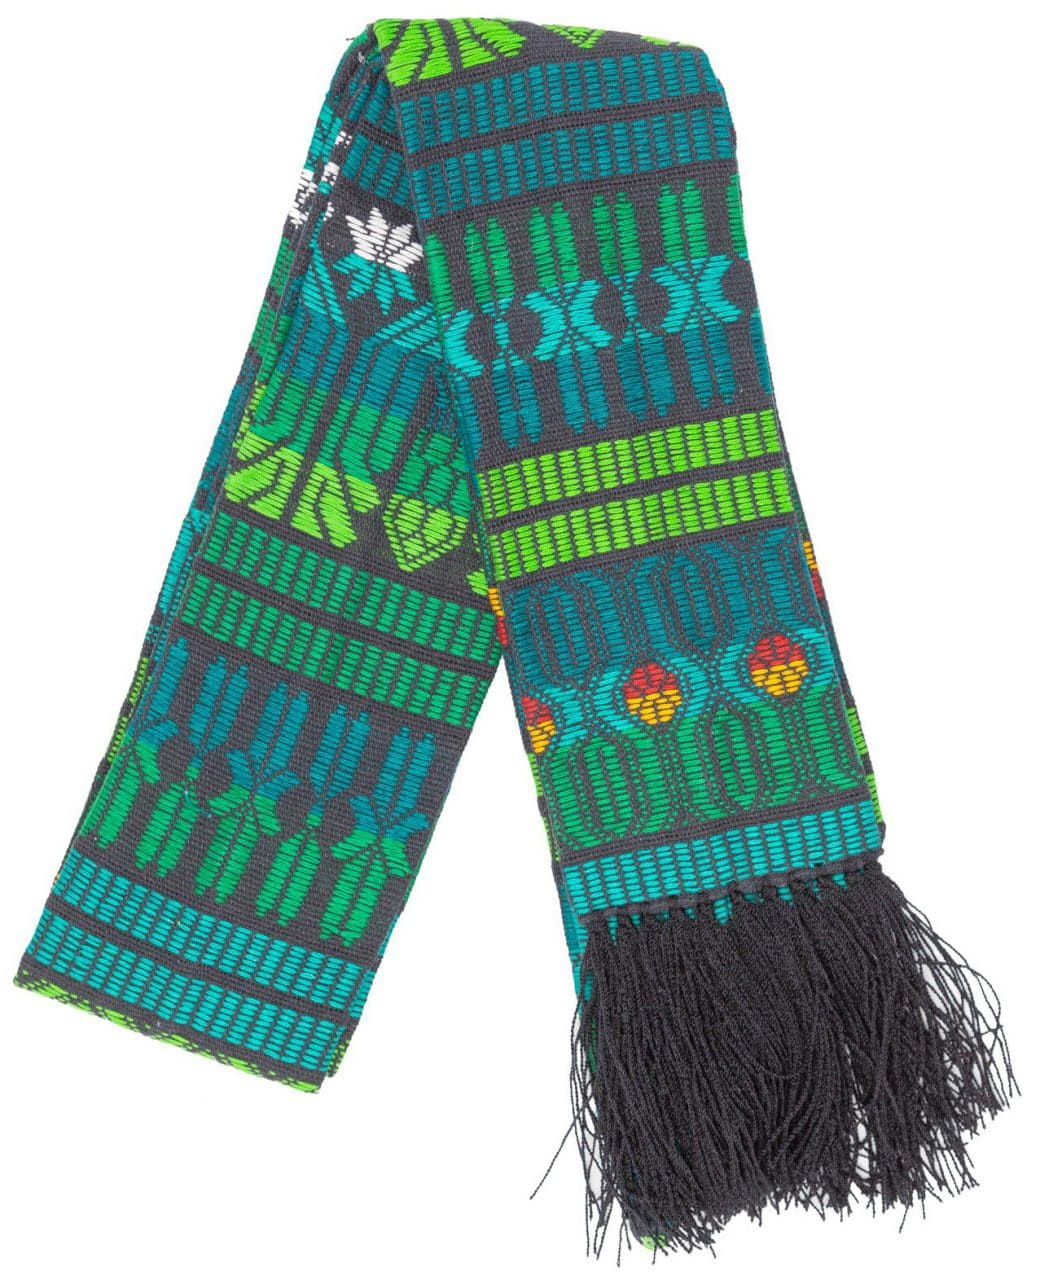 Brocaded Clerical Stole - Green